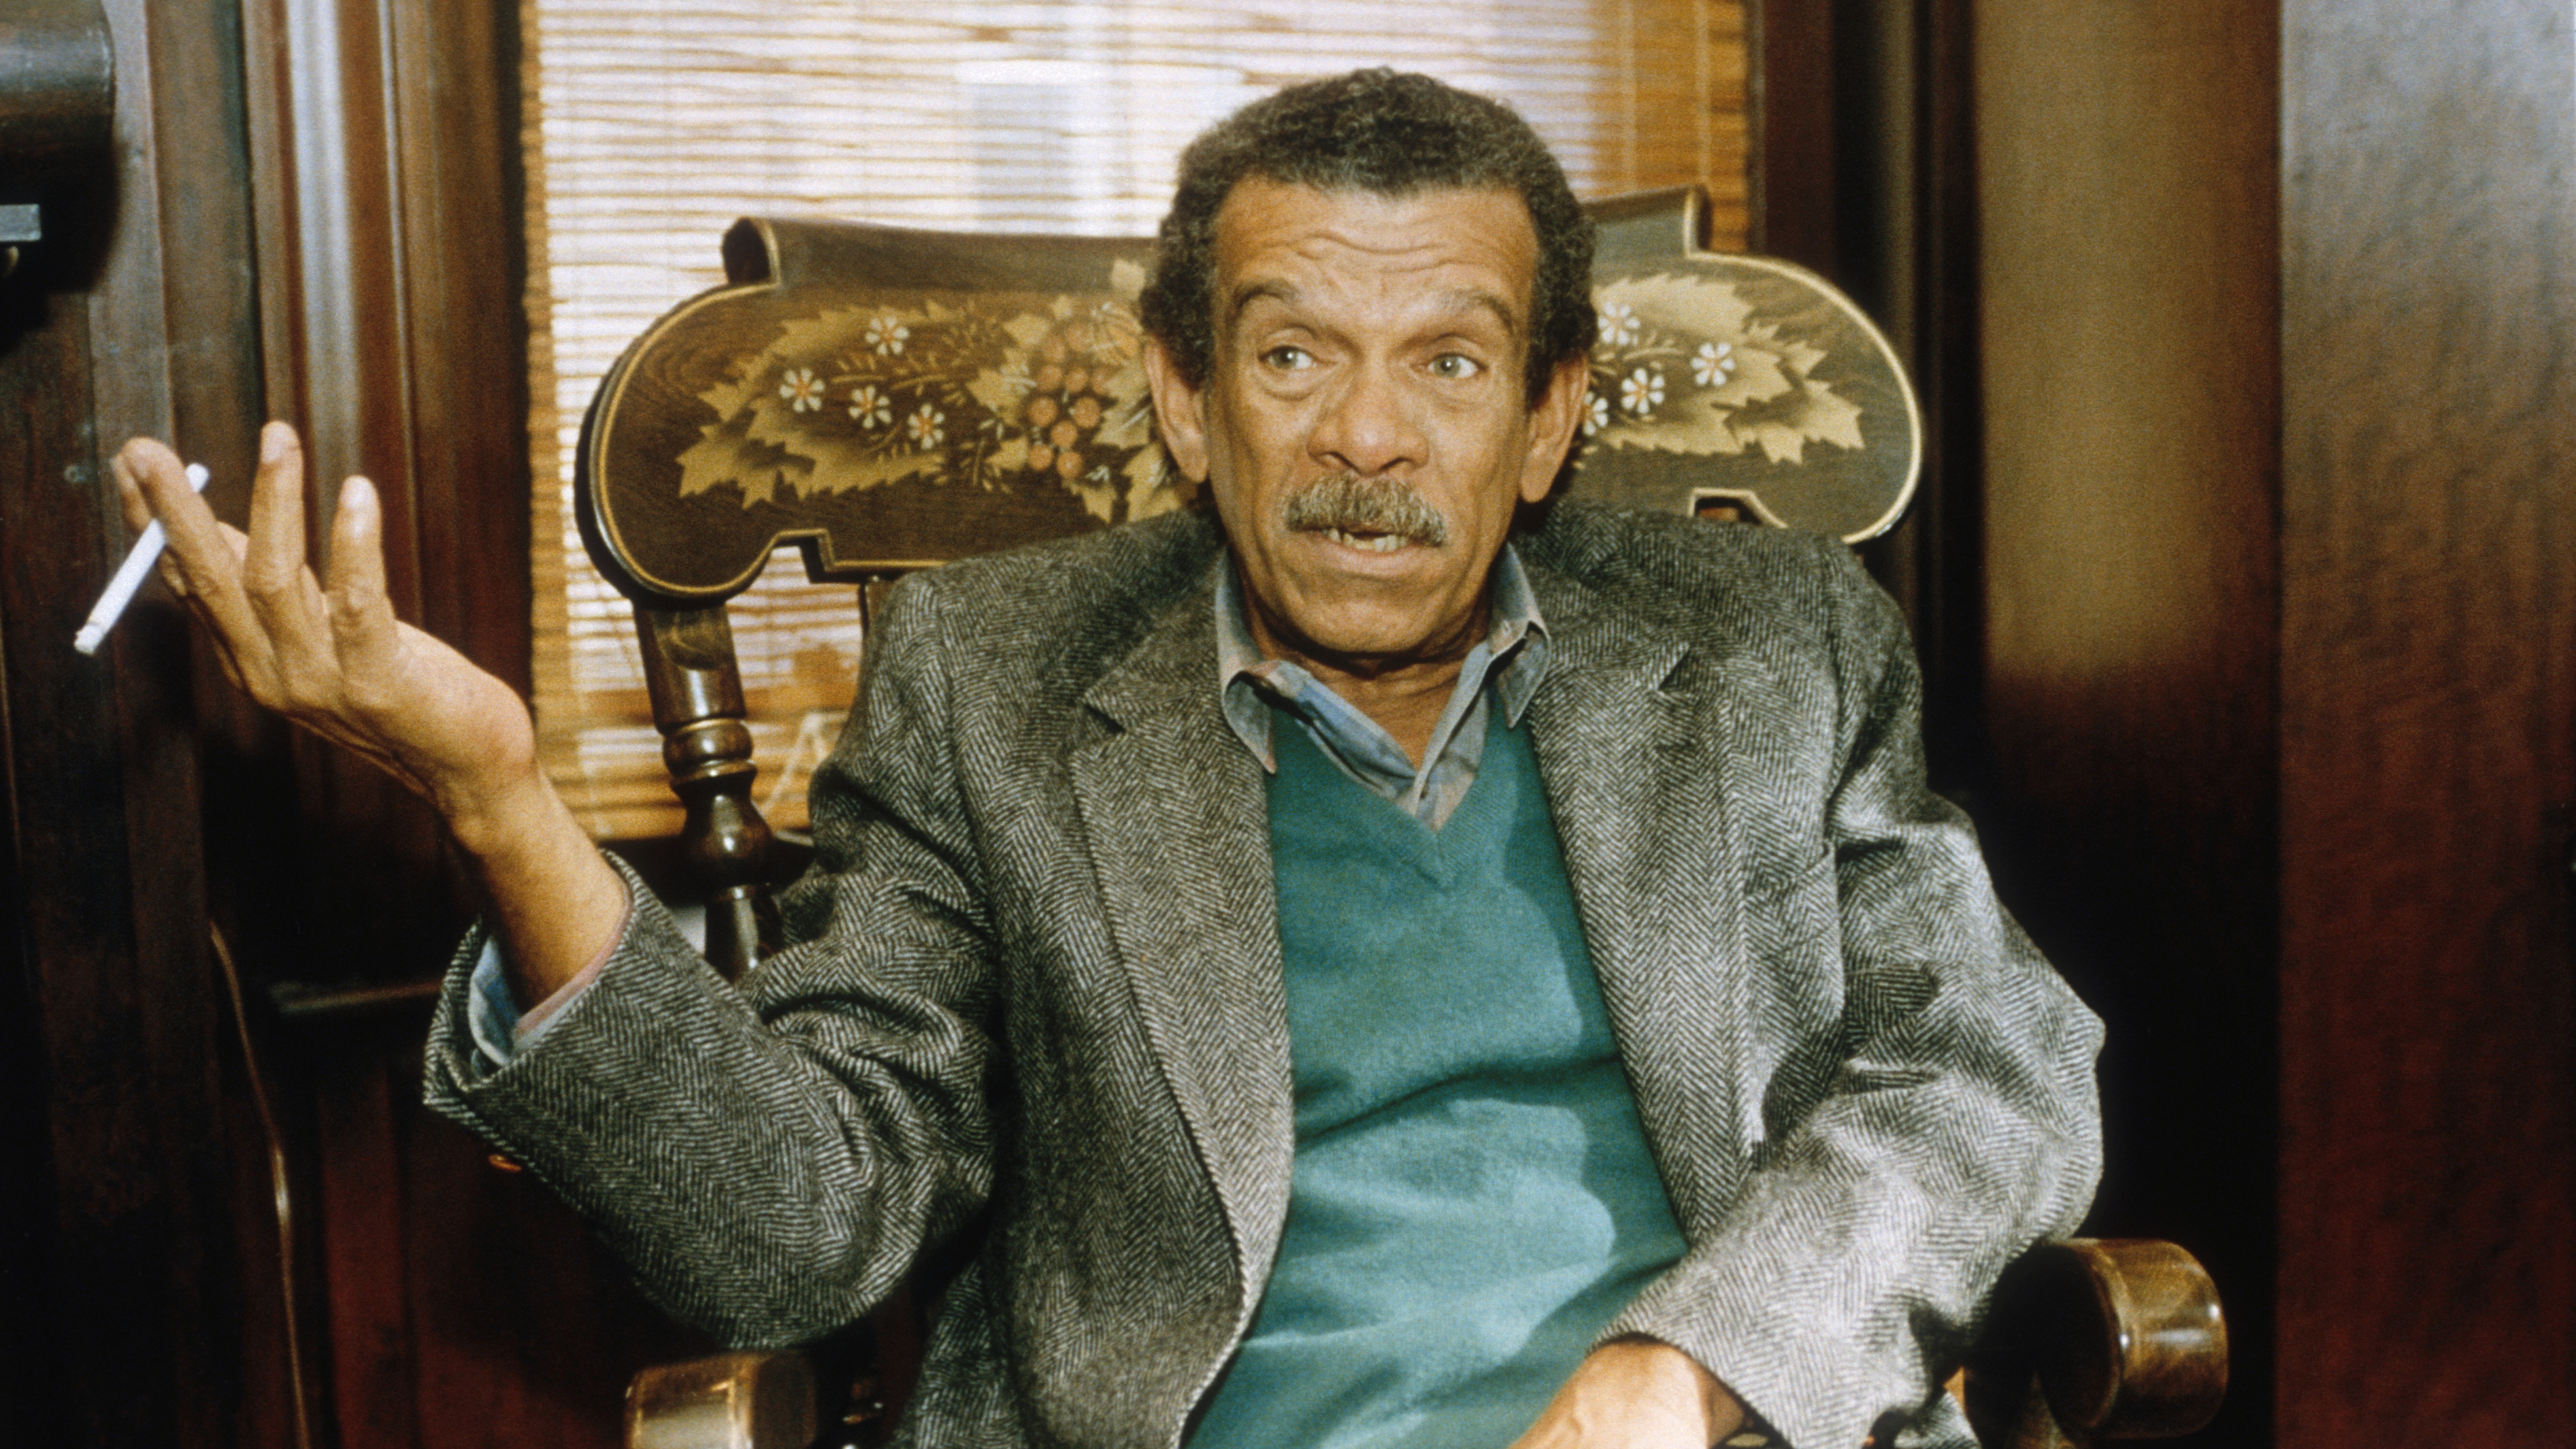 DEREK WALCOTT,NOBEL PRIZE FOR LITERATURE